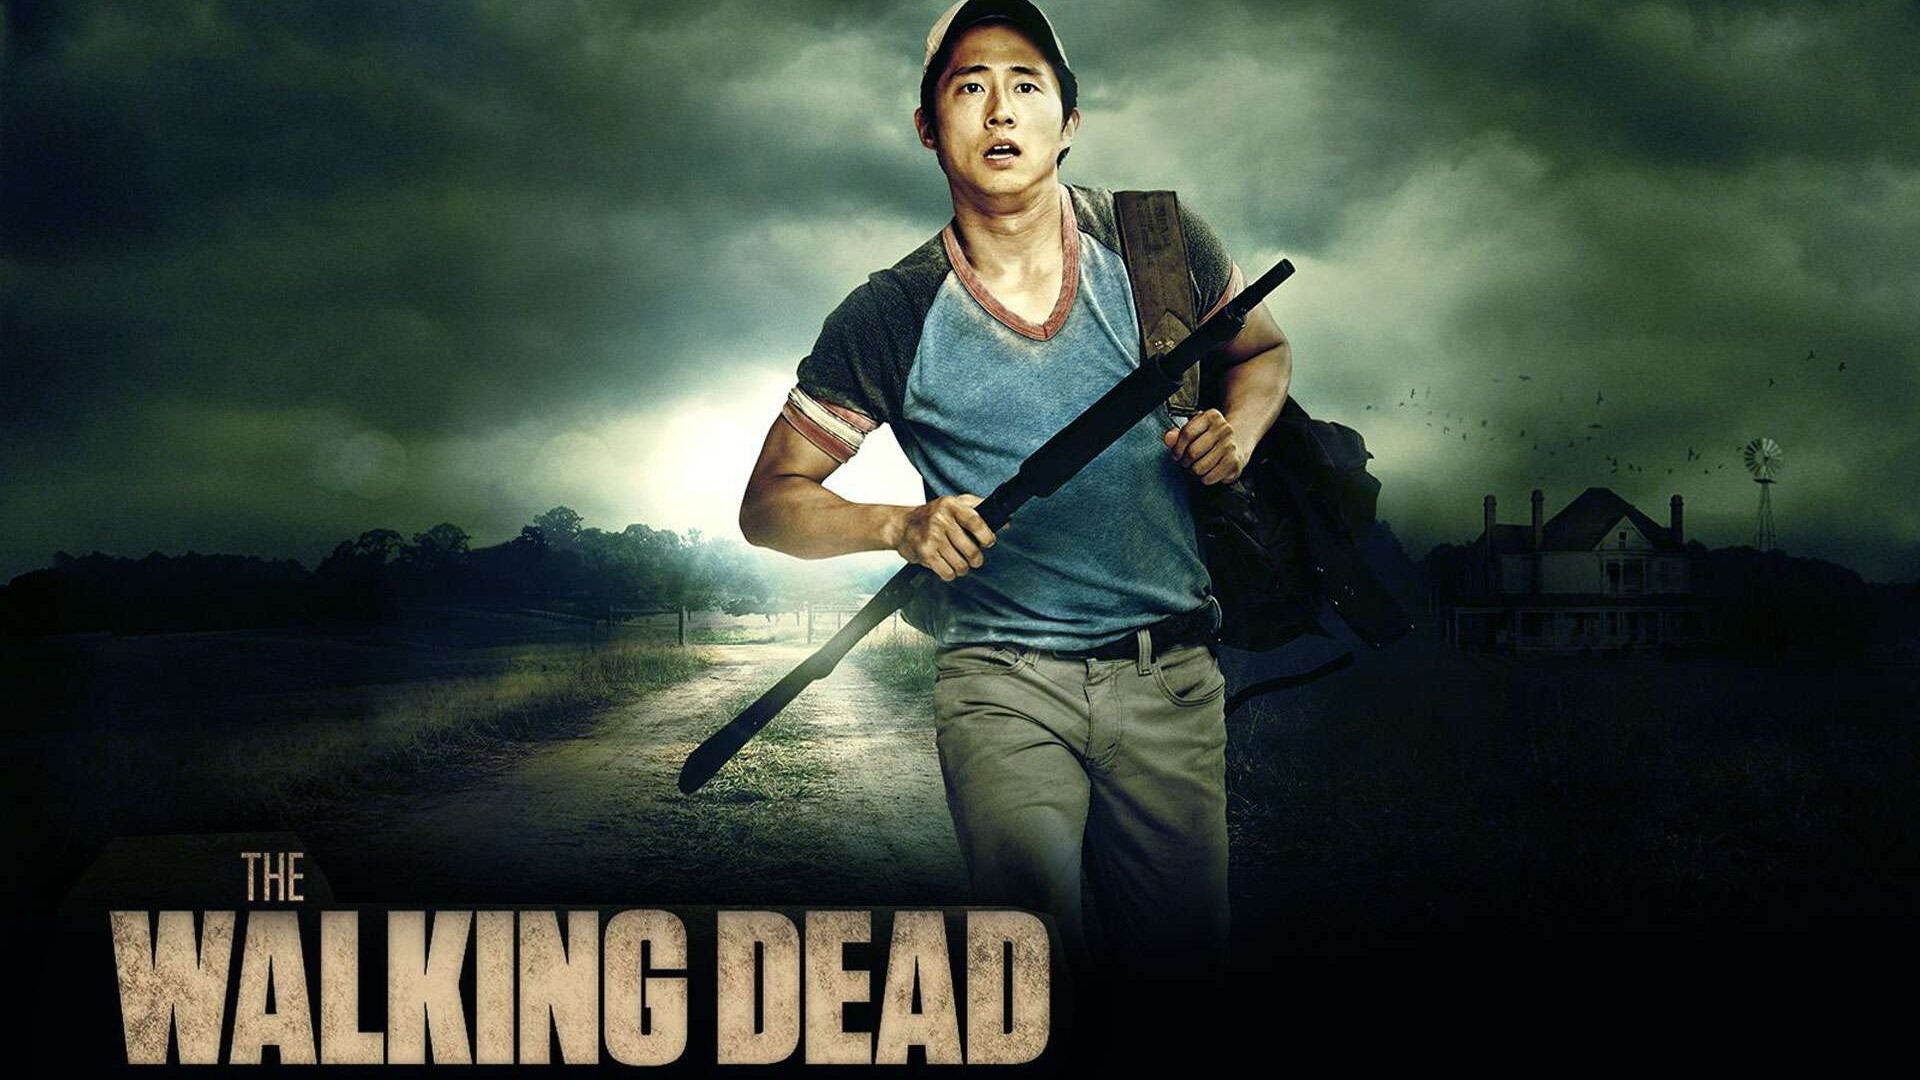 The Walking Dead Poster Desktop Pc And Mac Wallpaper 1920 1200 The